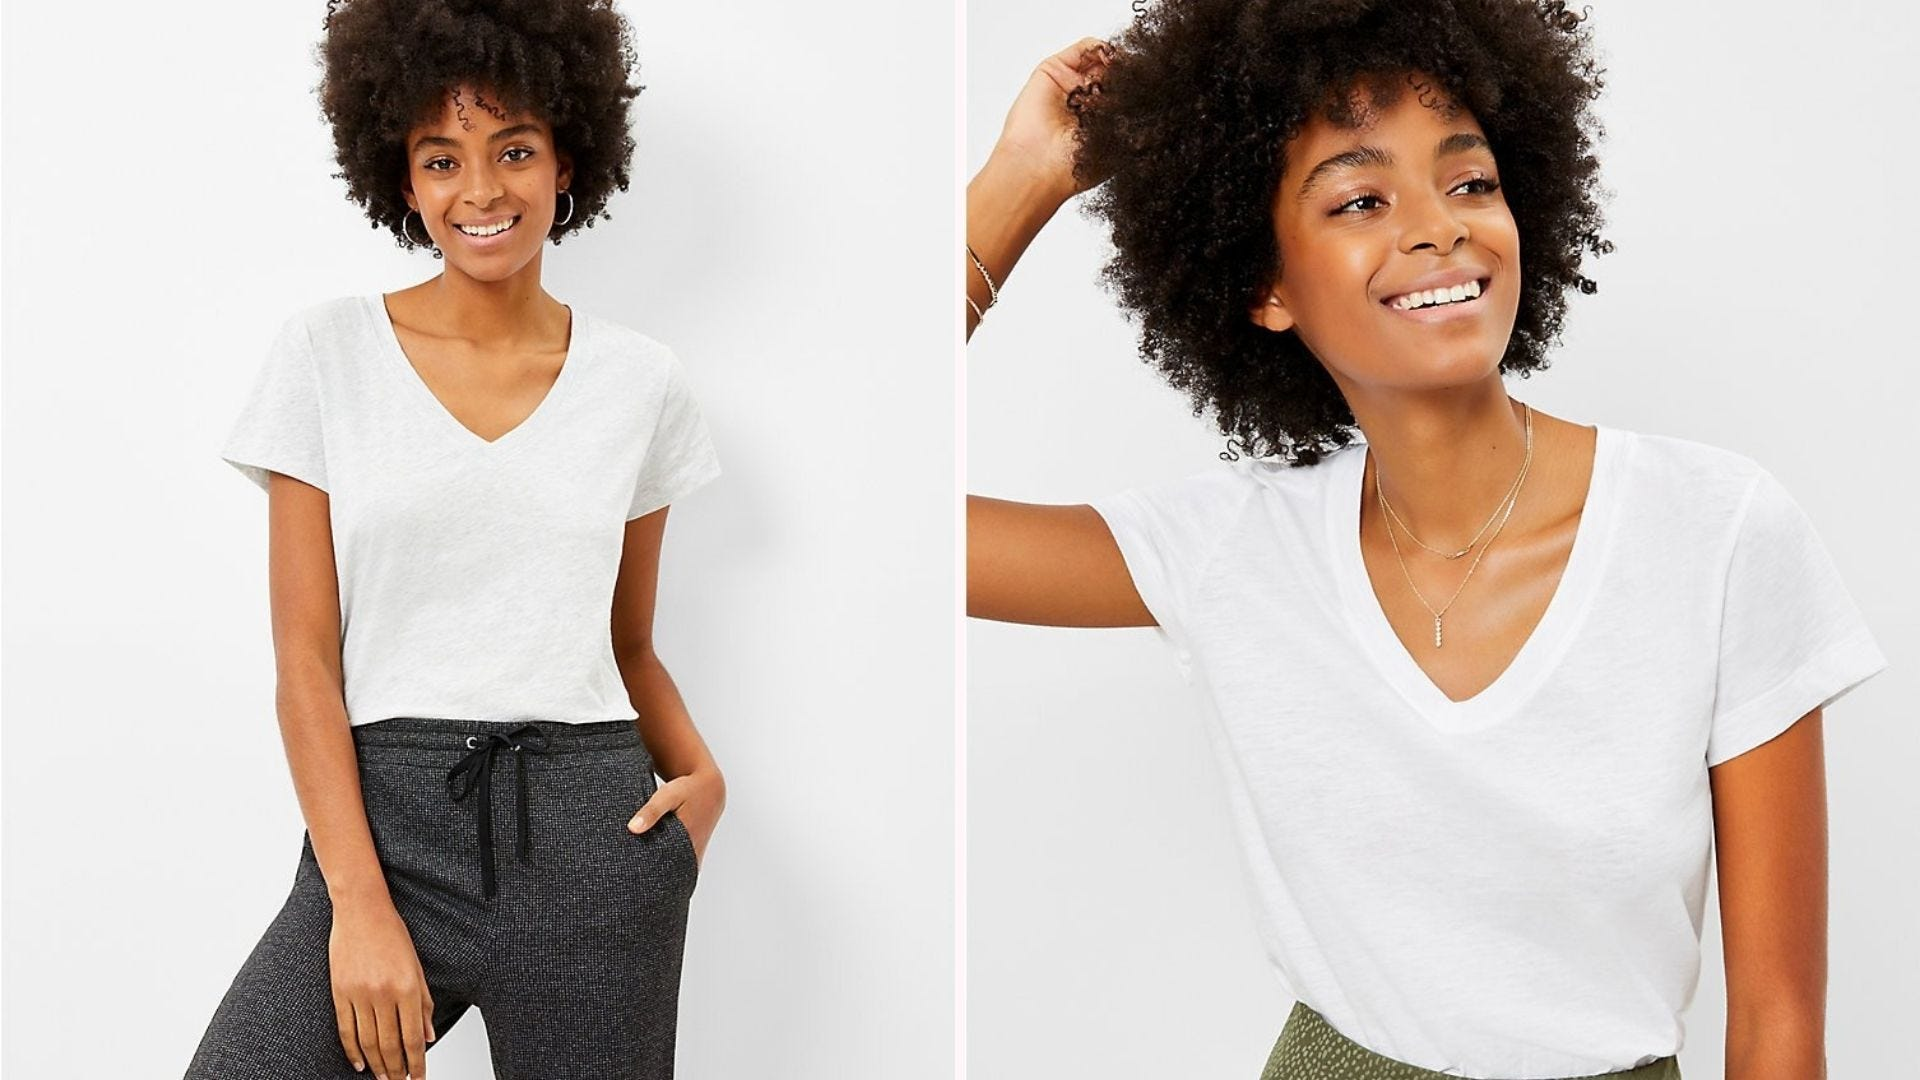 Two images of a Black woman wearing a white V-neck t-shirt